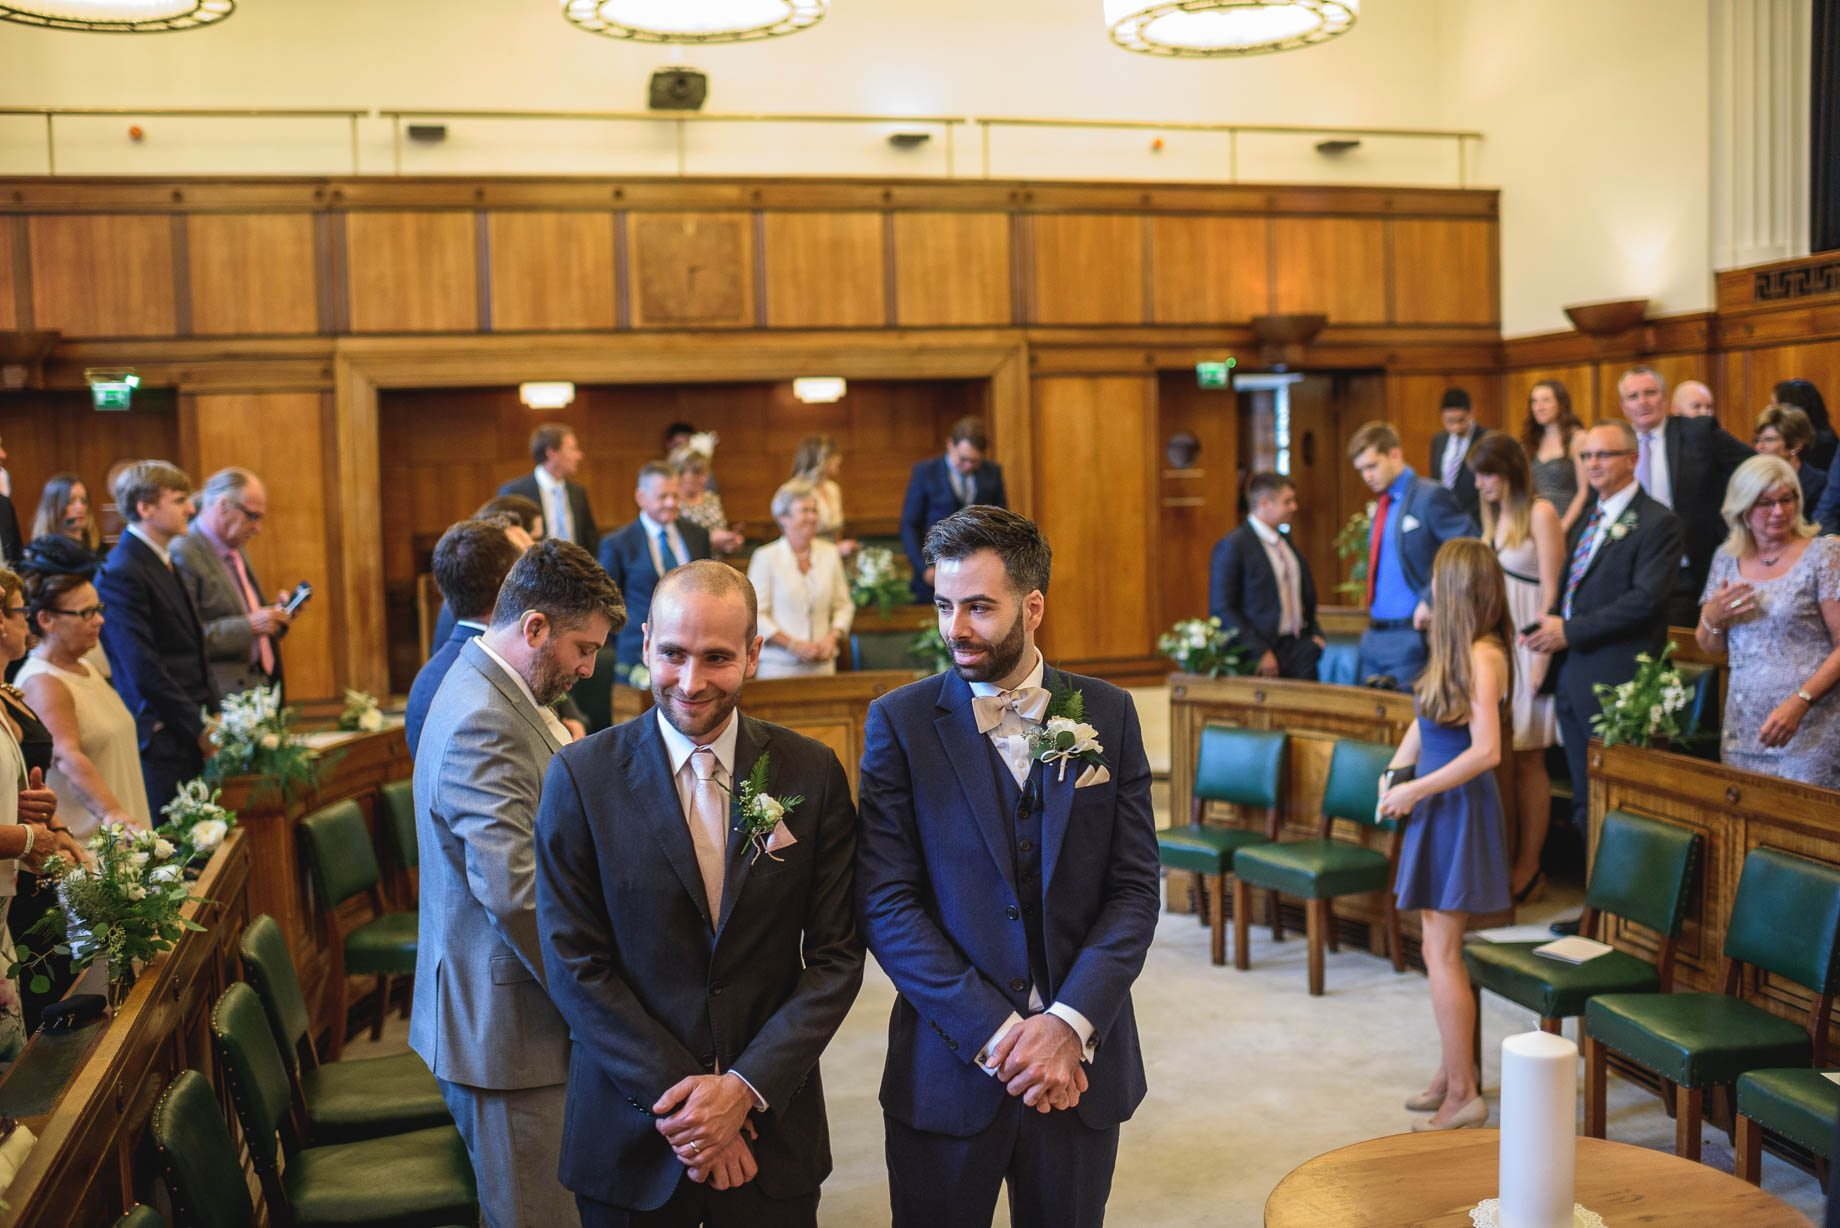 London Wedding Photography - Guy Collier Photography - LJ + Russell (51 of 155)